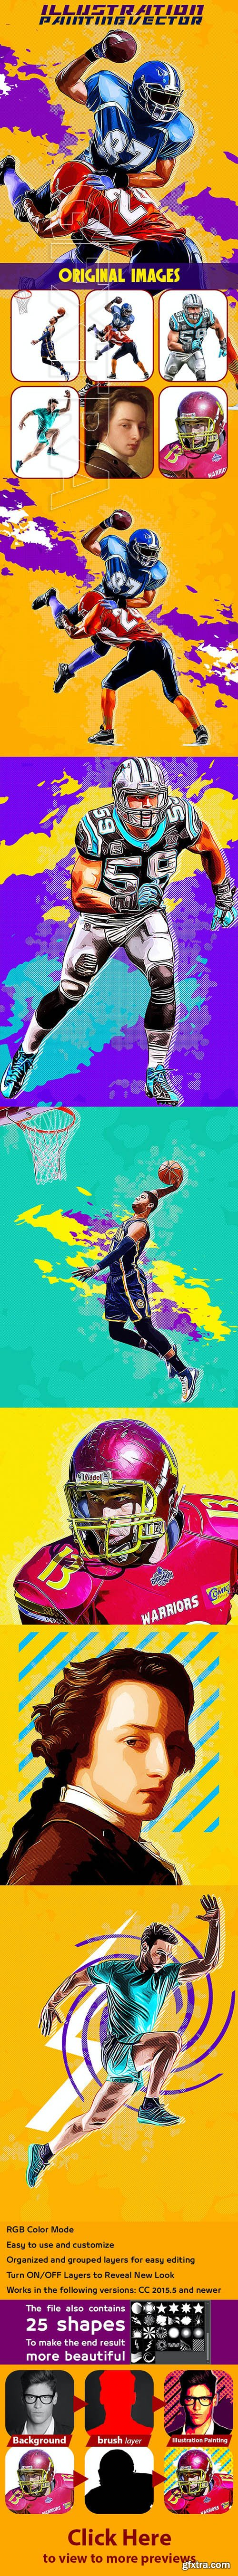 GraphicRiver - Illustration Painting Vector Action 26581141